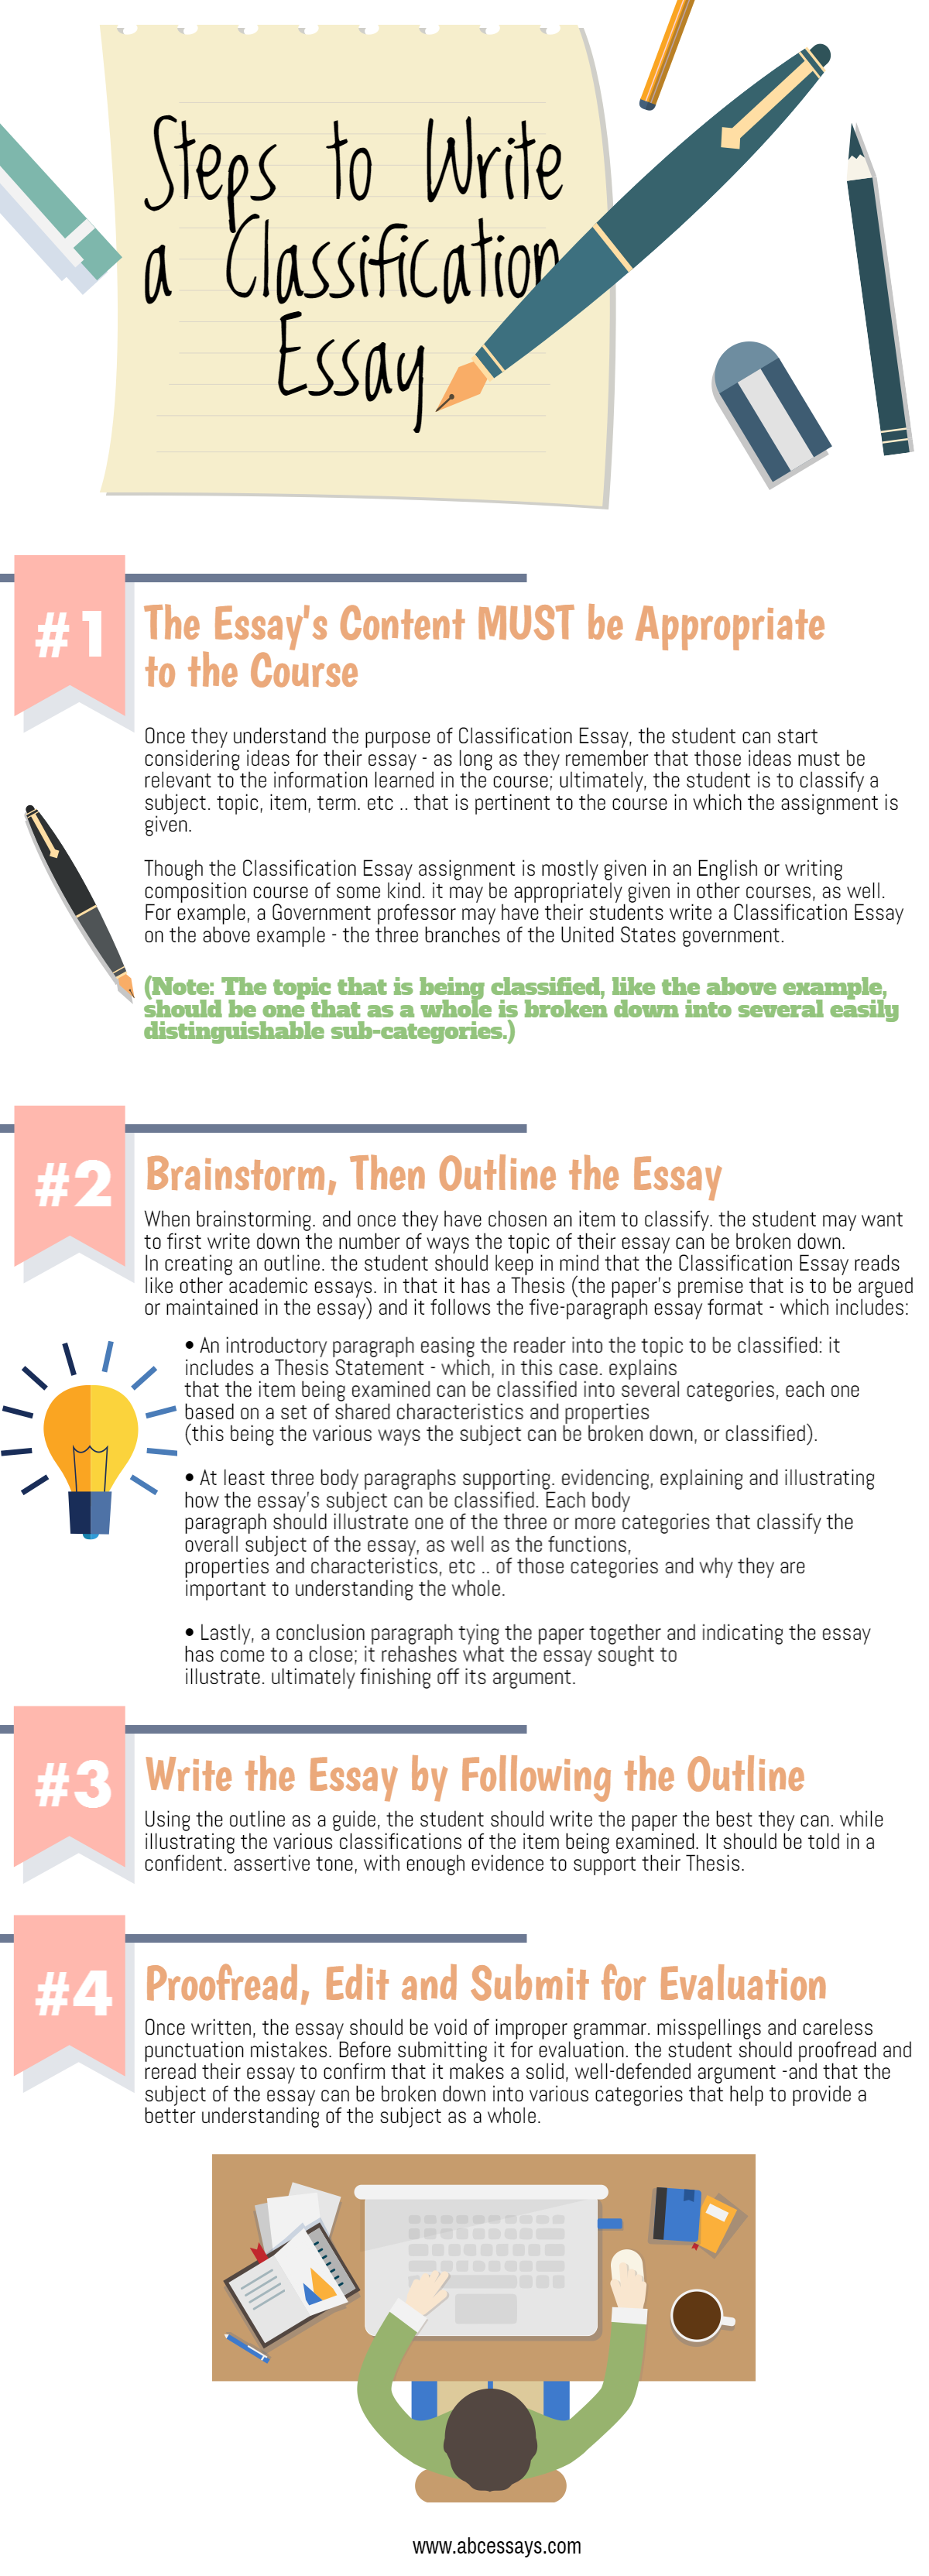 proofreading essays essay proof essays proof essay picture resume  how to write classification essay division essay examples division essay example classification and division essay classification